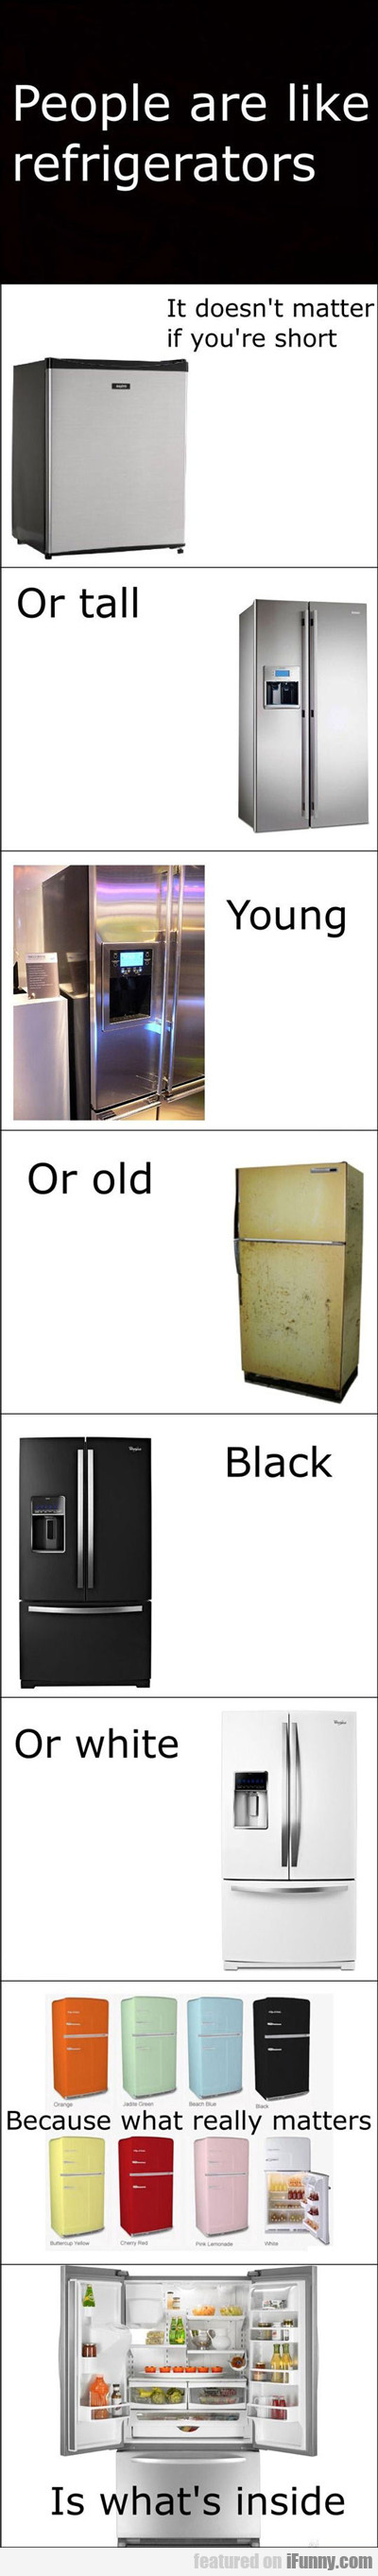 People Are Like Fridges...